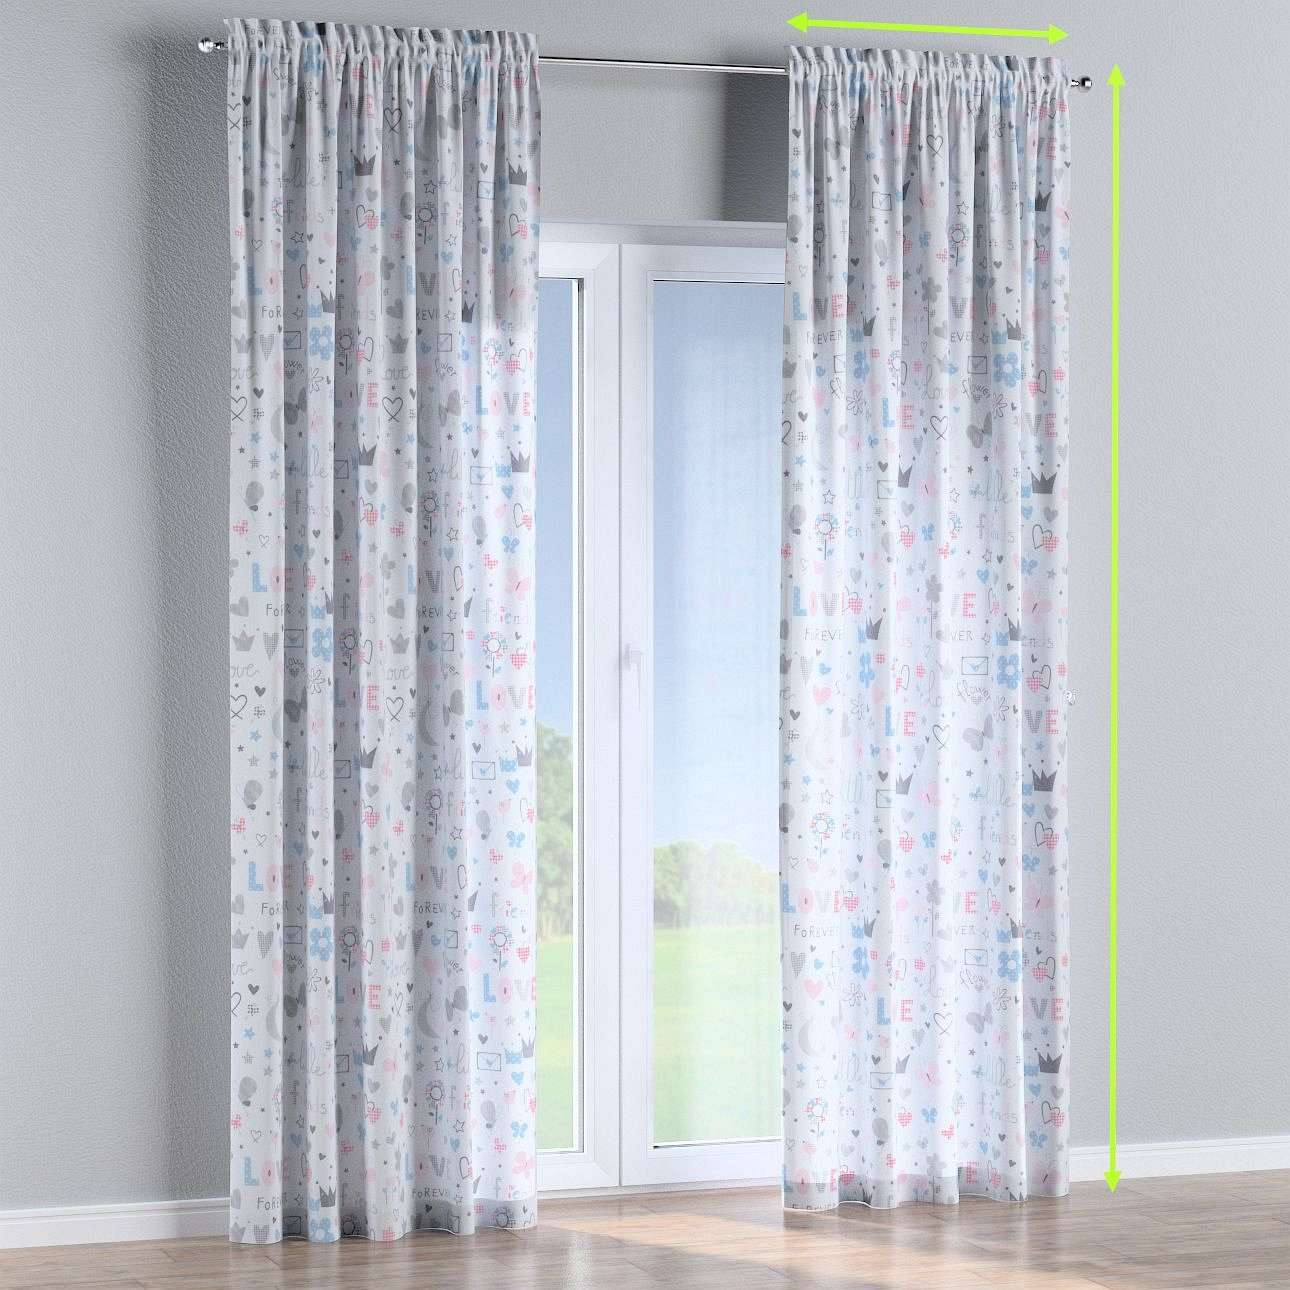 Slot and frill lined curtains in collection Little World, fabric: 141-27